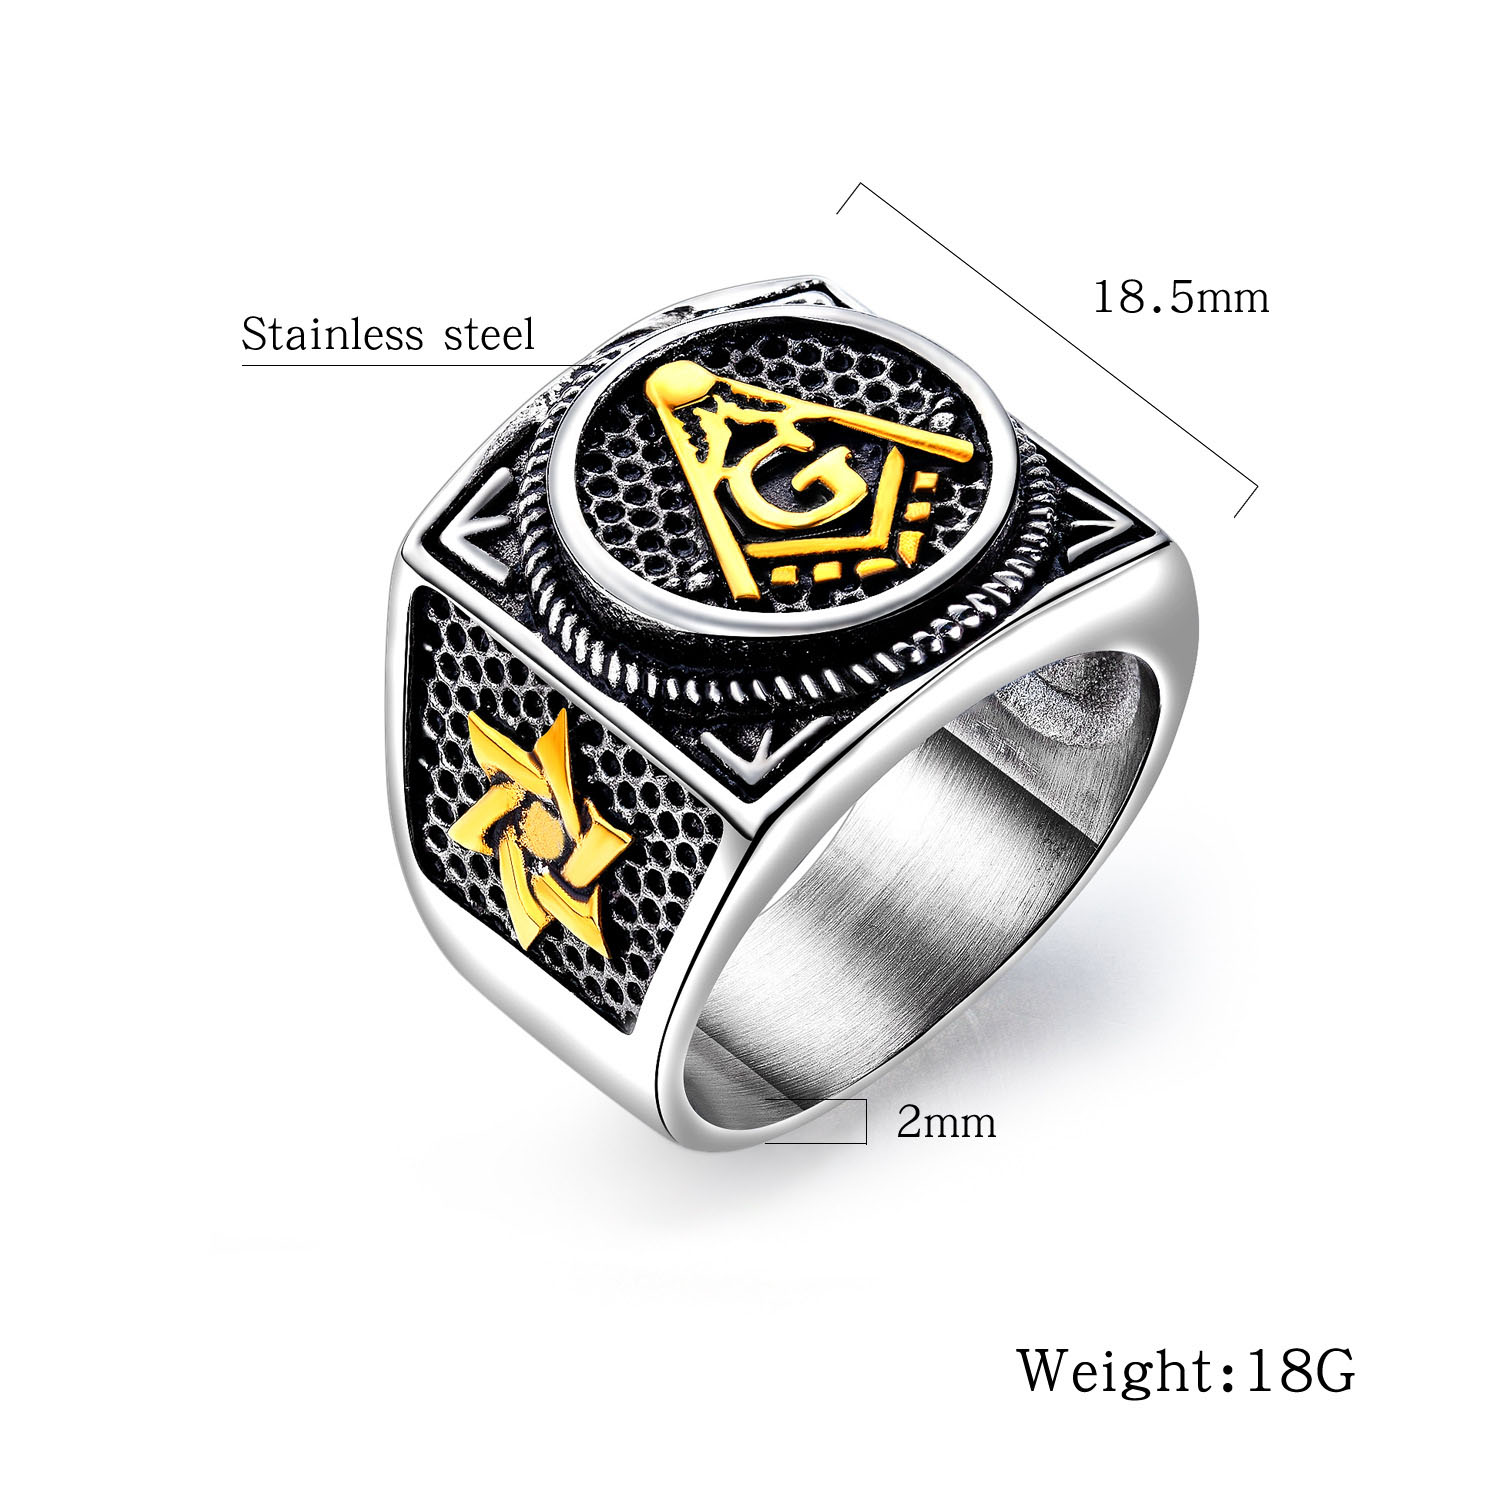 Vintage stainless steel star of david masonic rings for man